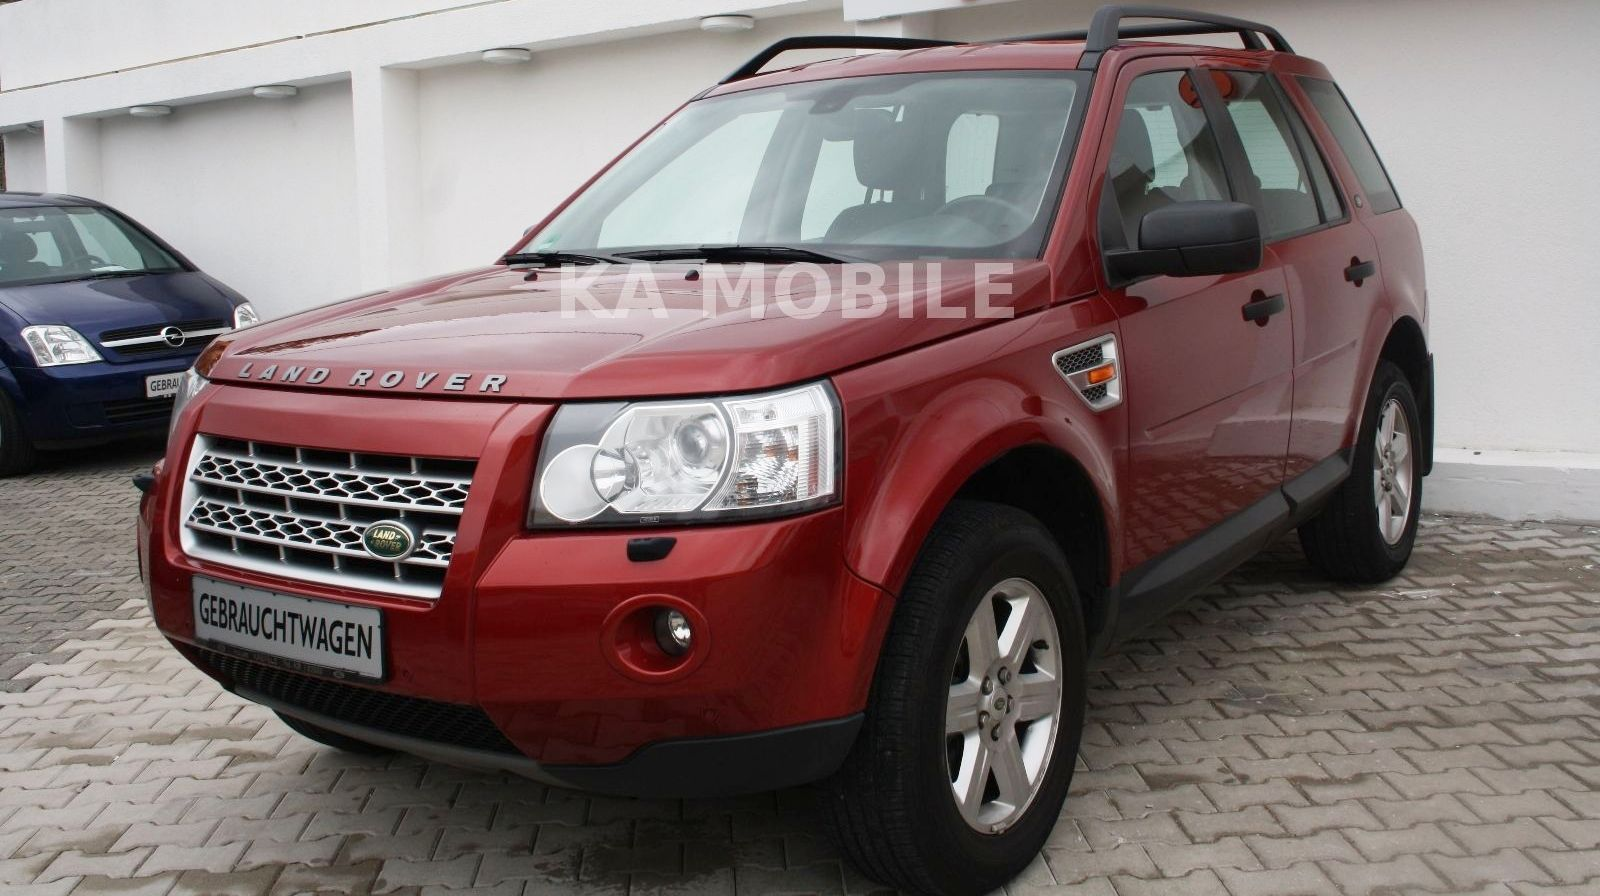 LANDROVER FREELANDER (05/2008) - DEEP RED METALLIC - lieu: